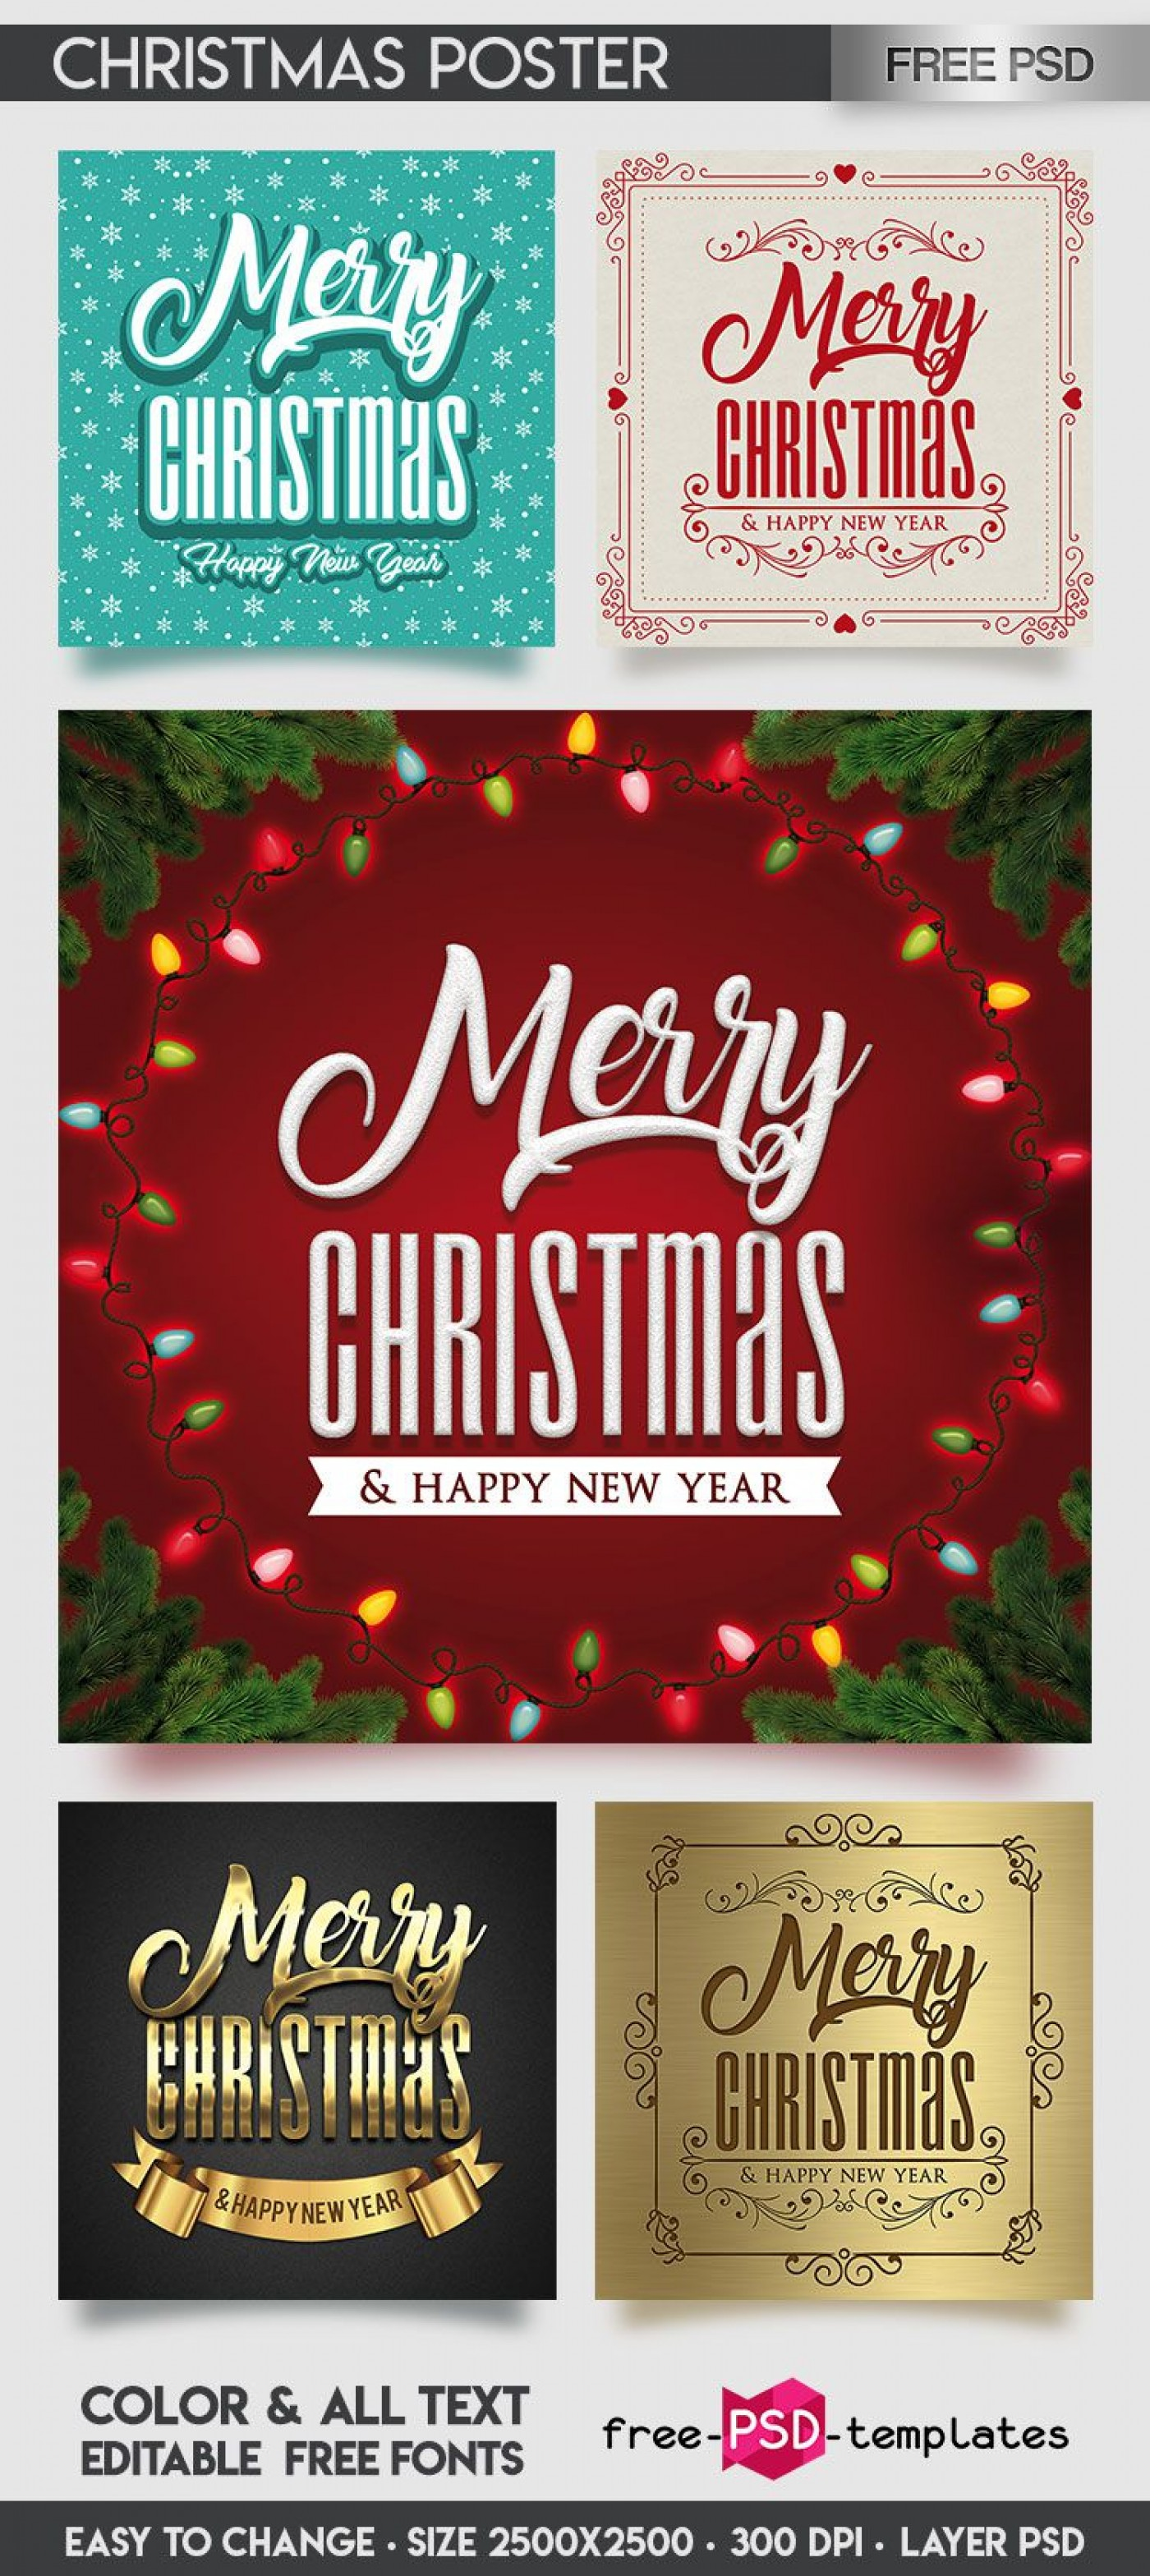 009 Fascinating Free Christma Poster Template Inspiration  Uk Party Download Fair1400